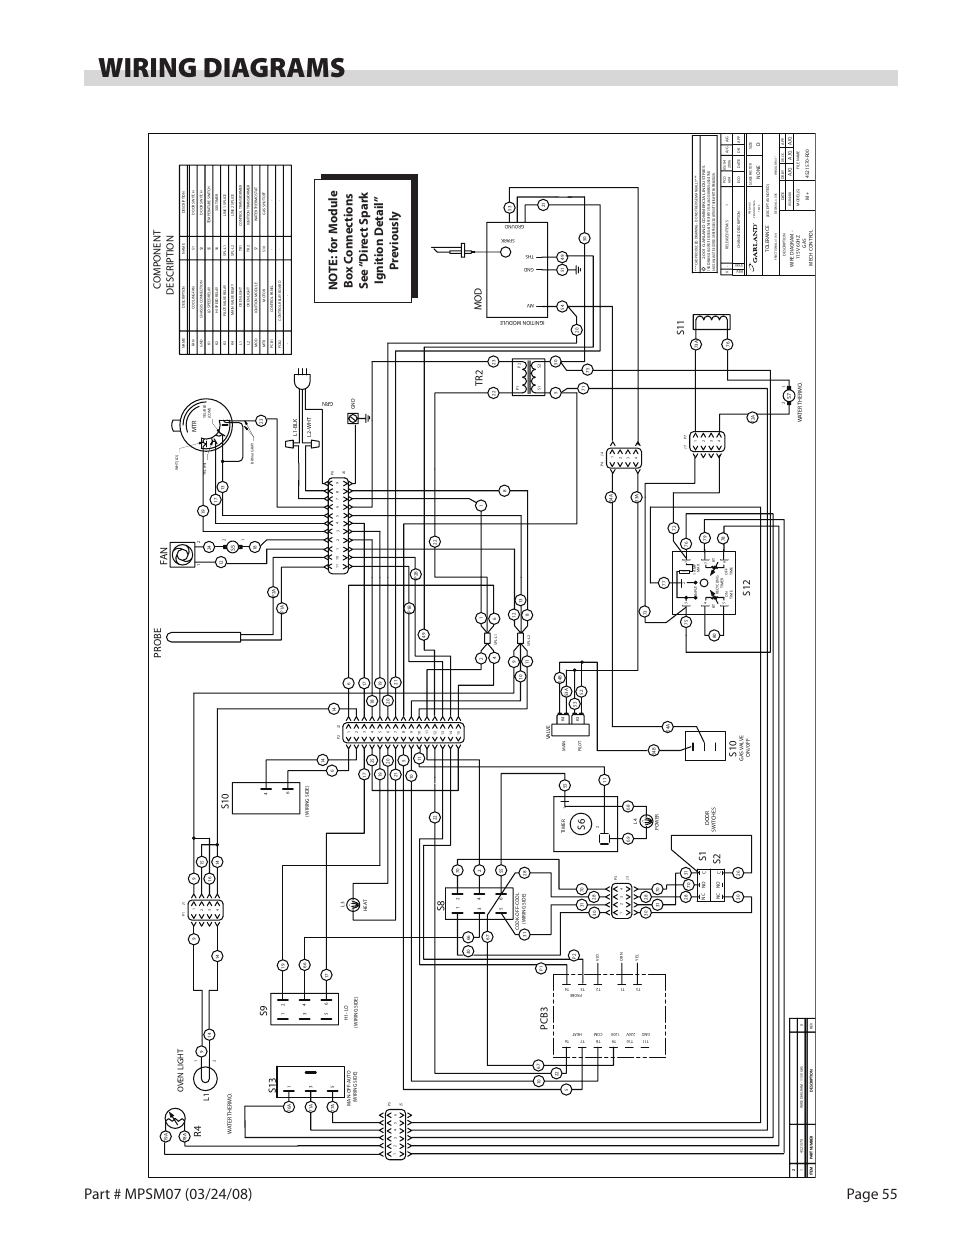 garland mp gd 10 s page55 siemens len00c003120b wiring diagram,len \u2022 indy500 co  at arjmand.co